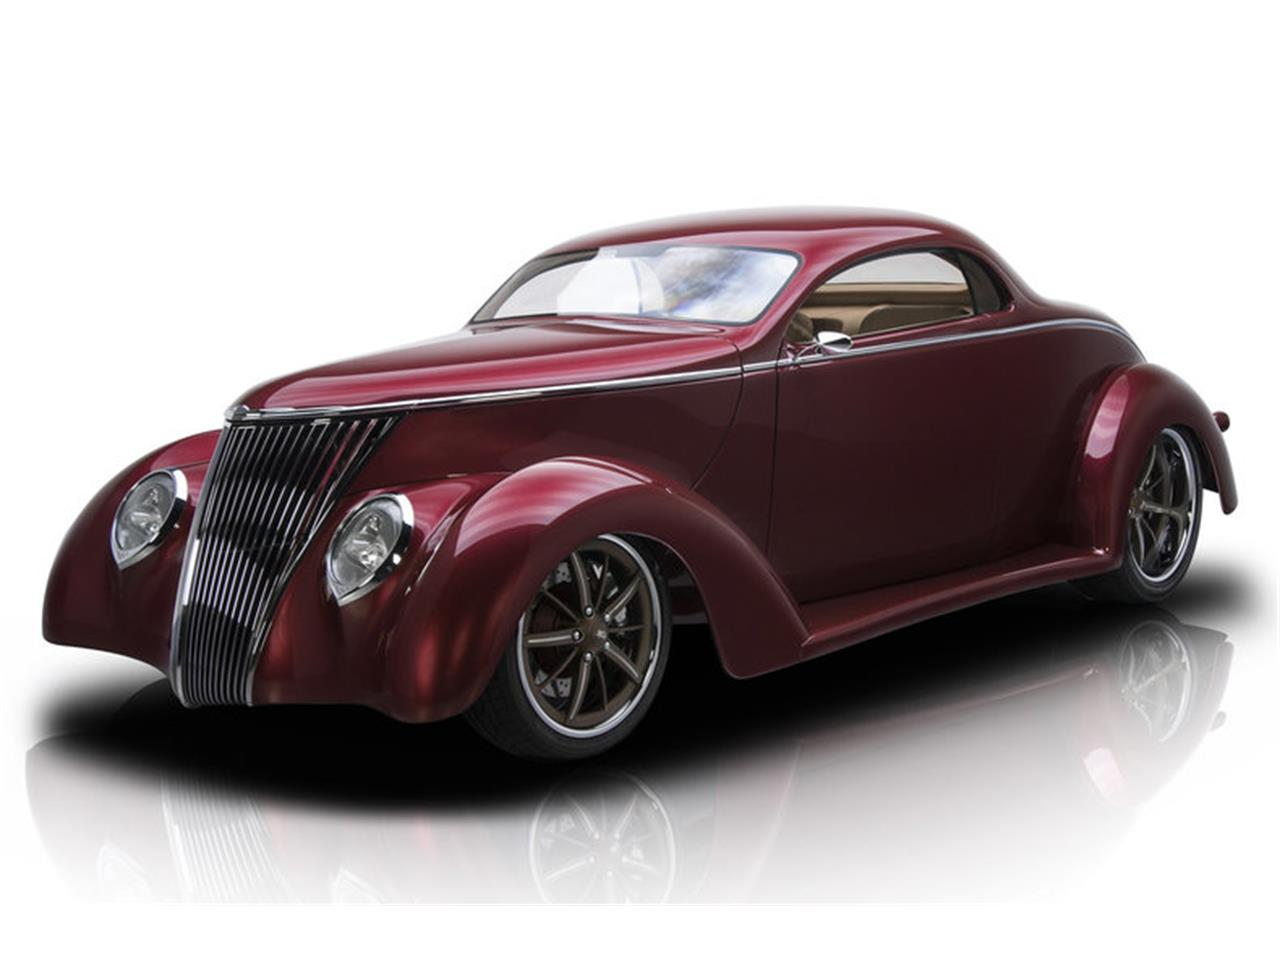 Large Picture of Classic '37 Ford Coupe - $159,900.00 Offered by RK Motors Charlotte - I585